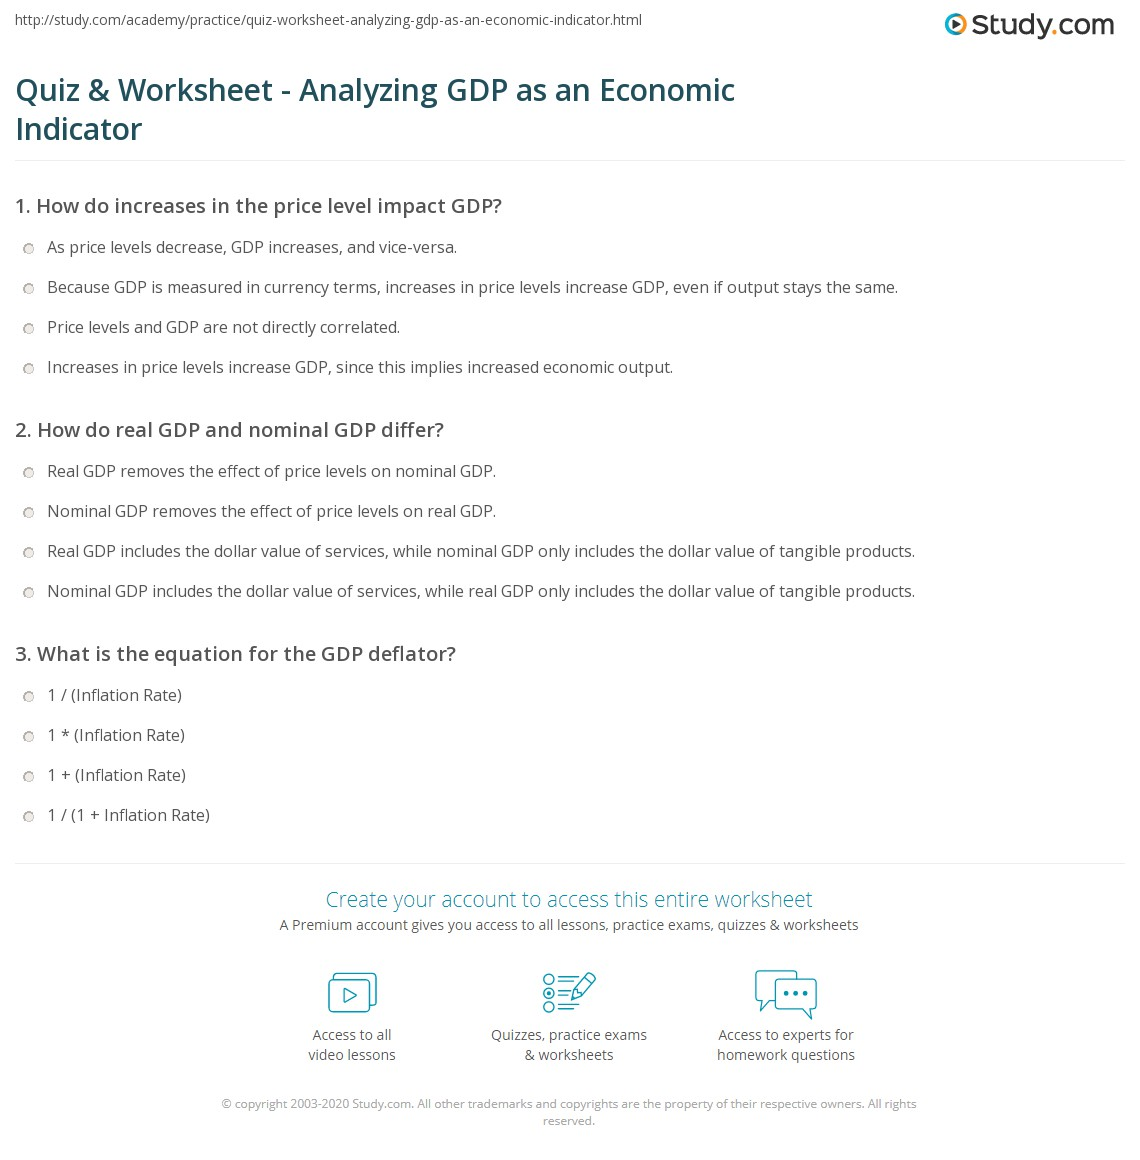 quiz worksheet analyzing gdp as an economic indicator. Black Bedroom Furniture Sets. Home Design Ideas